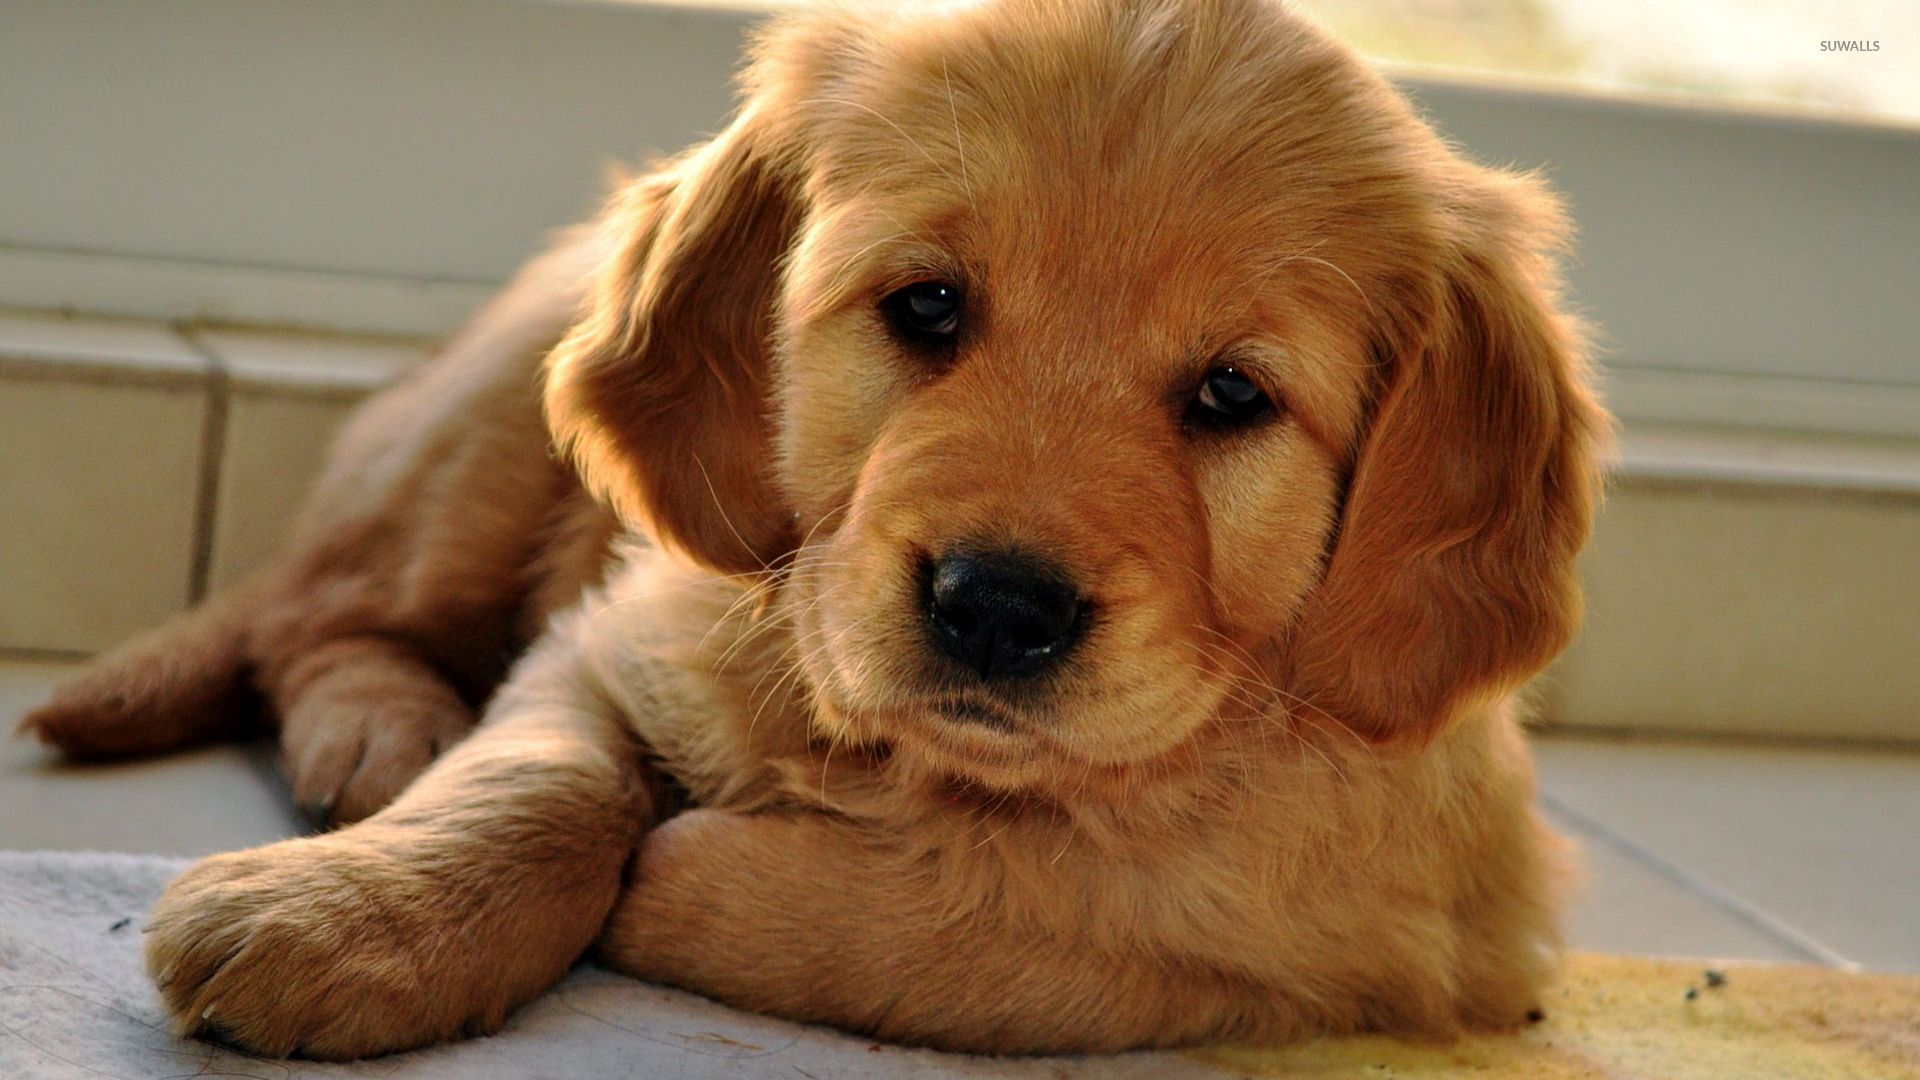 Dogs And Puppies Wallpaper Golden Retriever puppy...